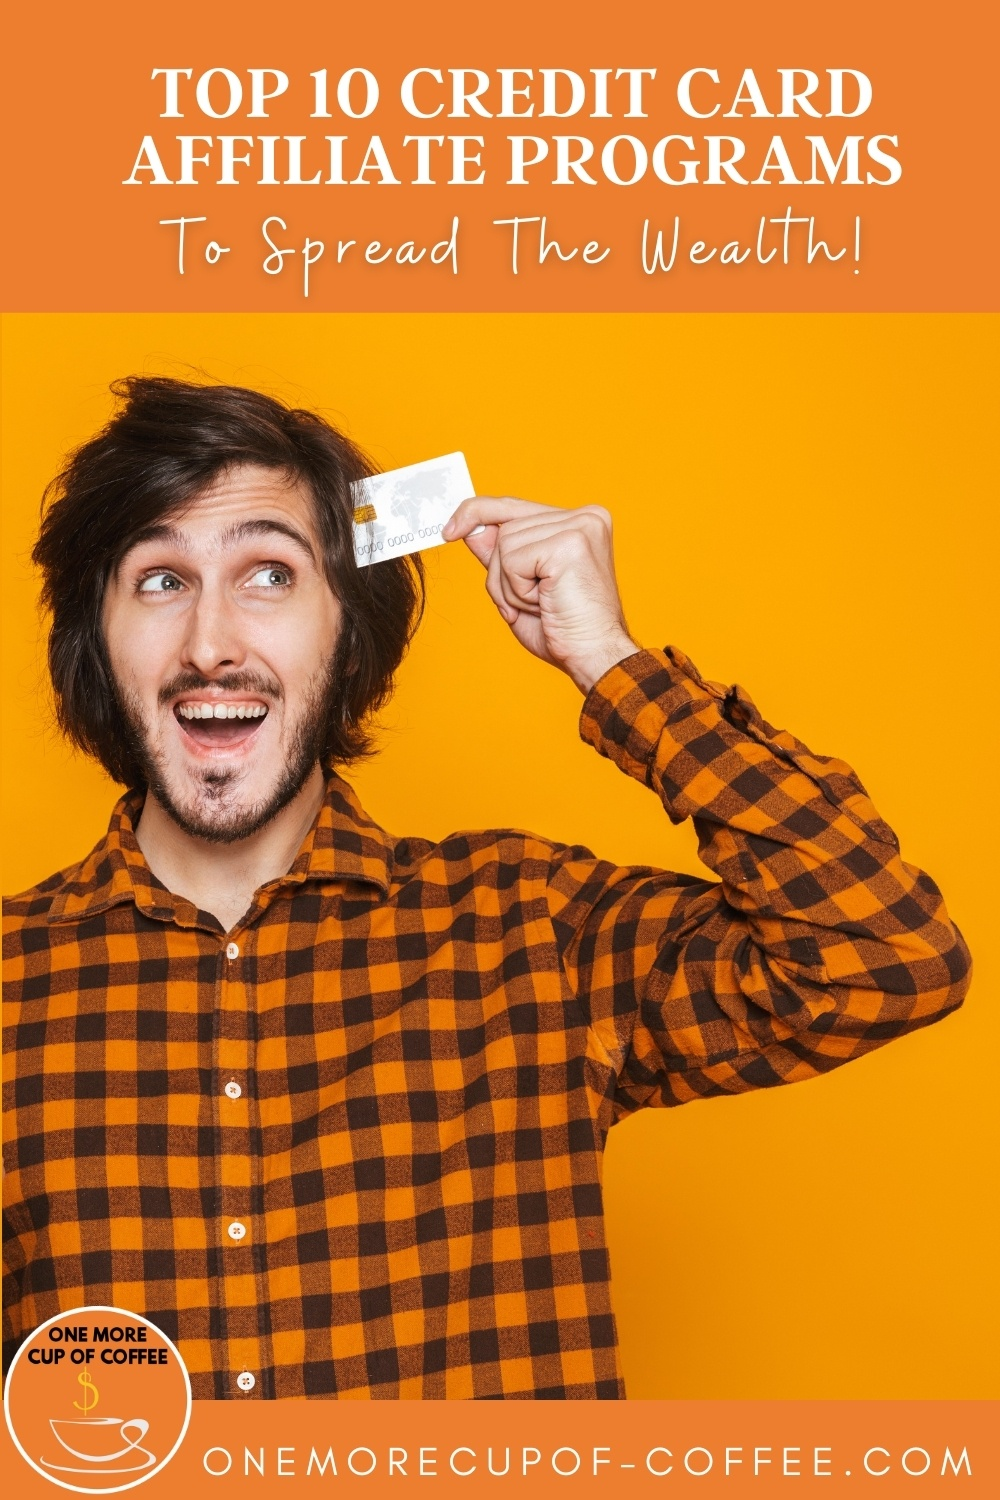 """happy man with mustache in yellow plaid holding credit card to his head while looking up; with text overlay """"Top 10 Credit Card Affiliate Programs To Spread The Wealth"""""""